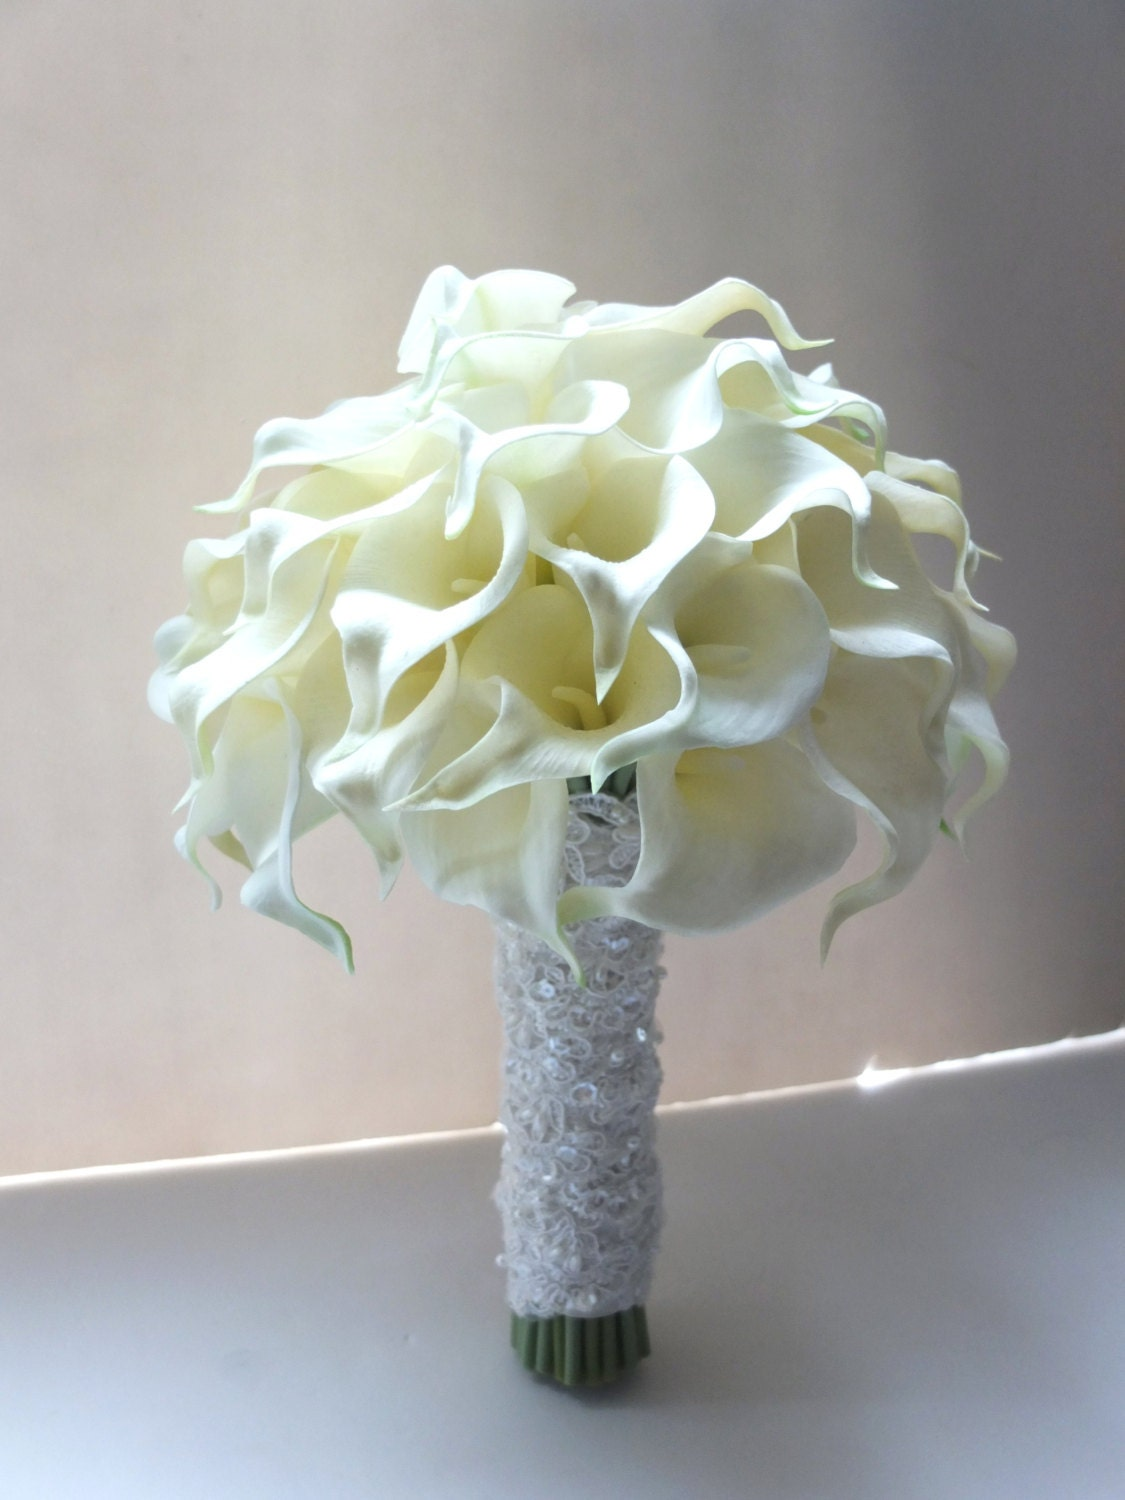 Pictures of Calla Lily Bridal Bouquets | LoveToKnow |Lily Bridal Bouquets